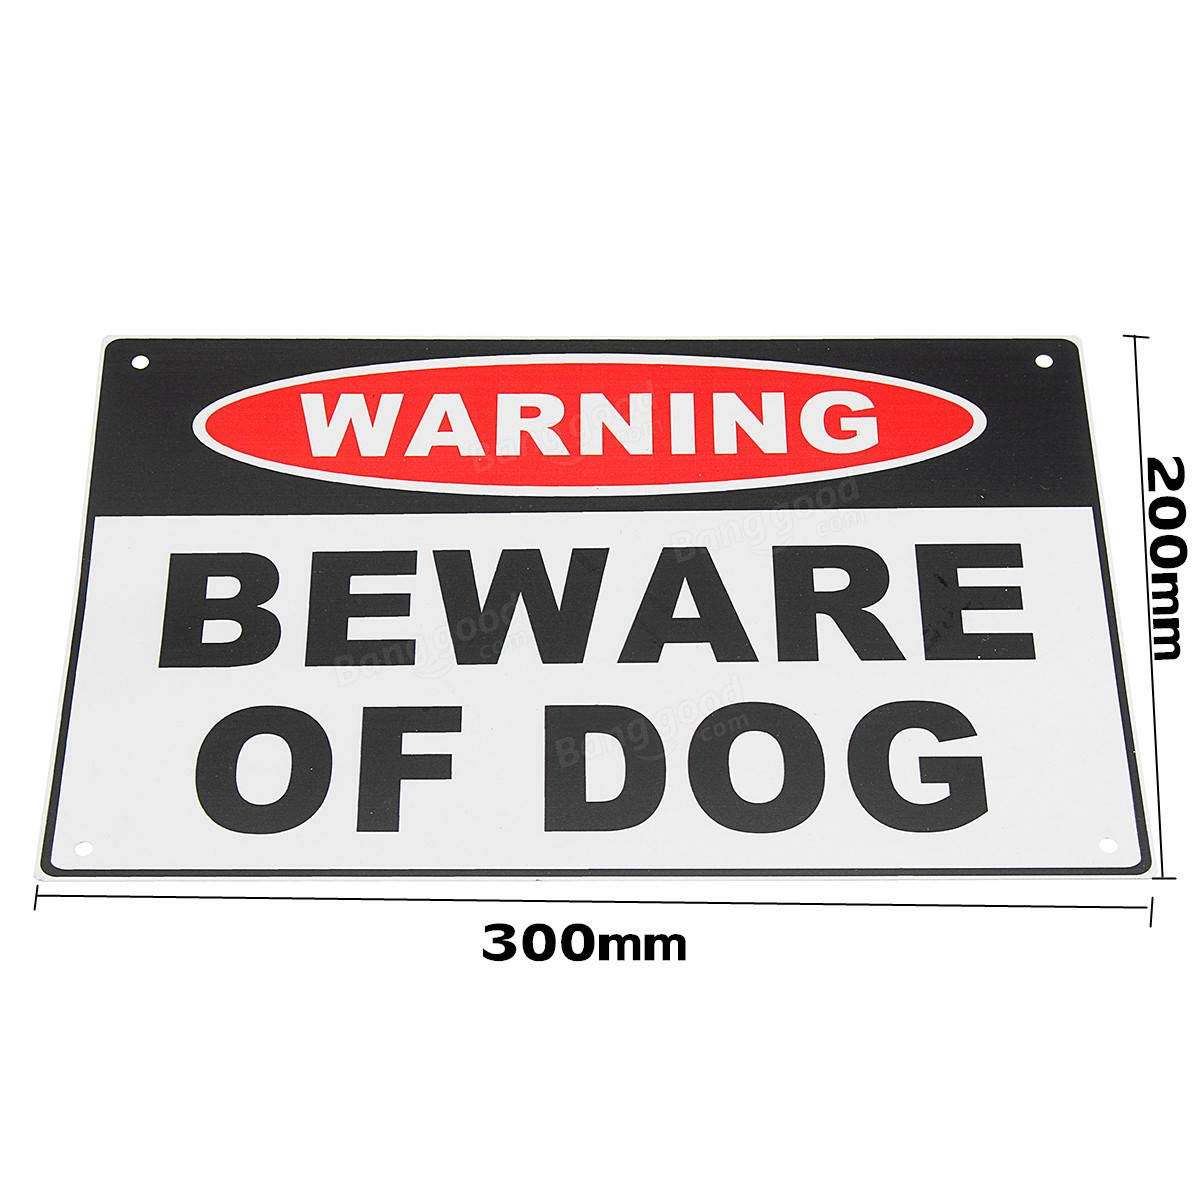 CCTV Security Accessories Warning Sign - 200x300mm Warning Beware of Dog Aluminium Safety Warning Sign House Door Wall Sticker - 1 x Warning Sign Details Pictures: